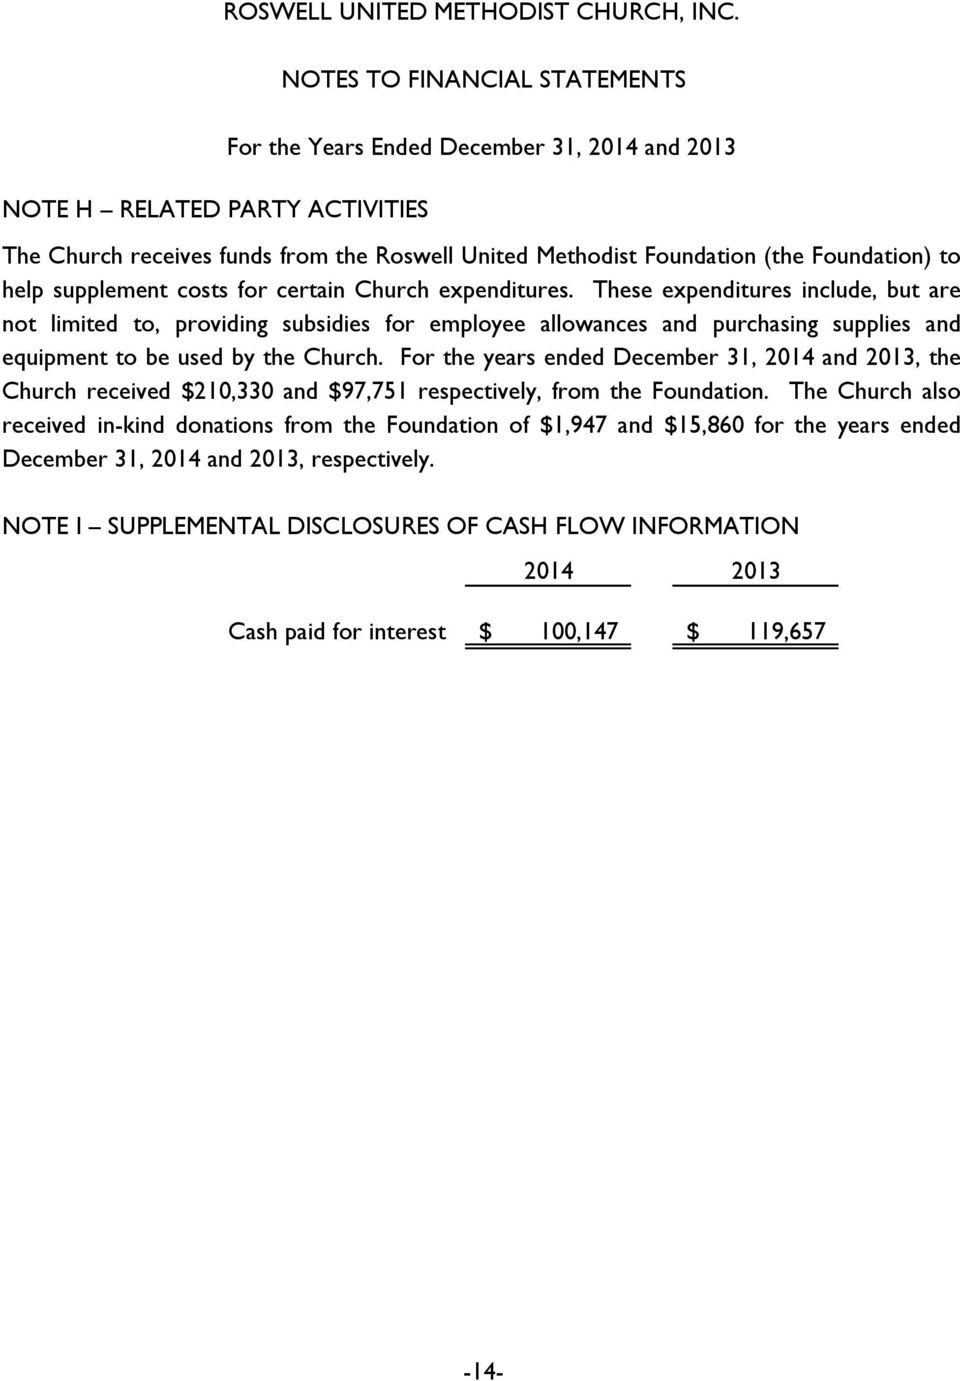 For the years ended December 31, 2014 and 2013, the Church received $210,330 and $97,751 respectively, from the Foundation.